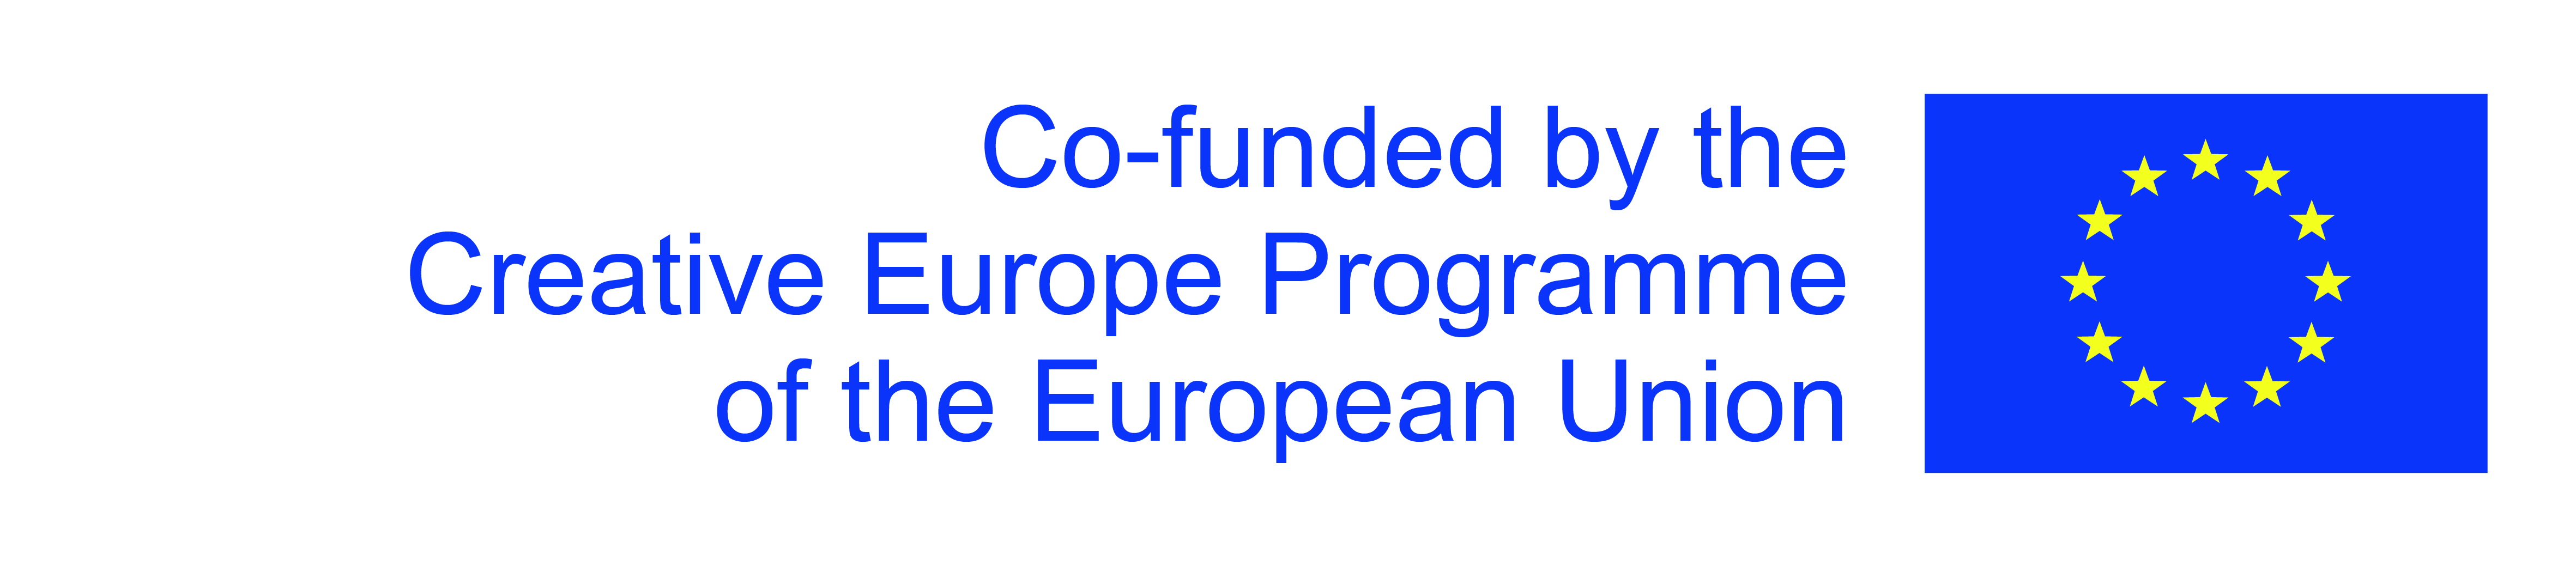 Co-funded by the EU Creative Europe Programme.